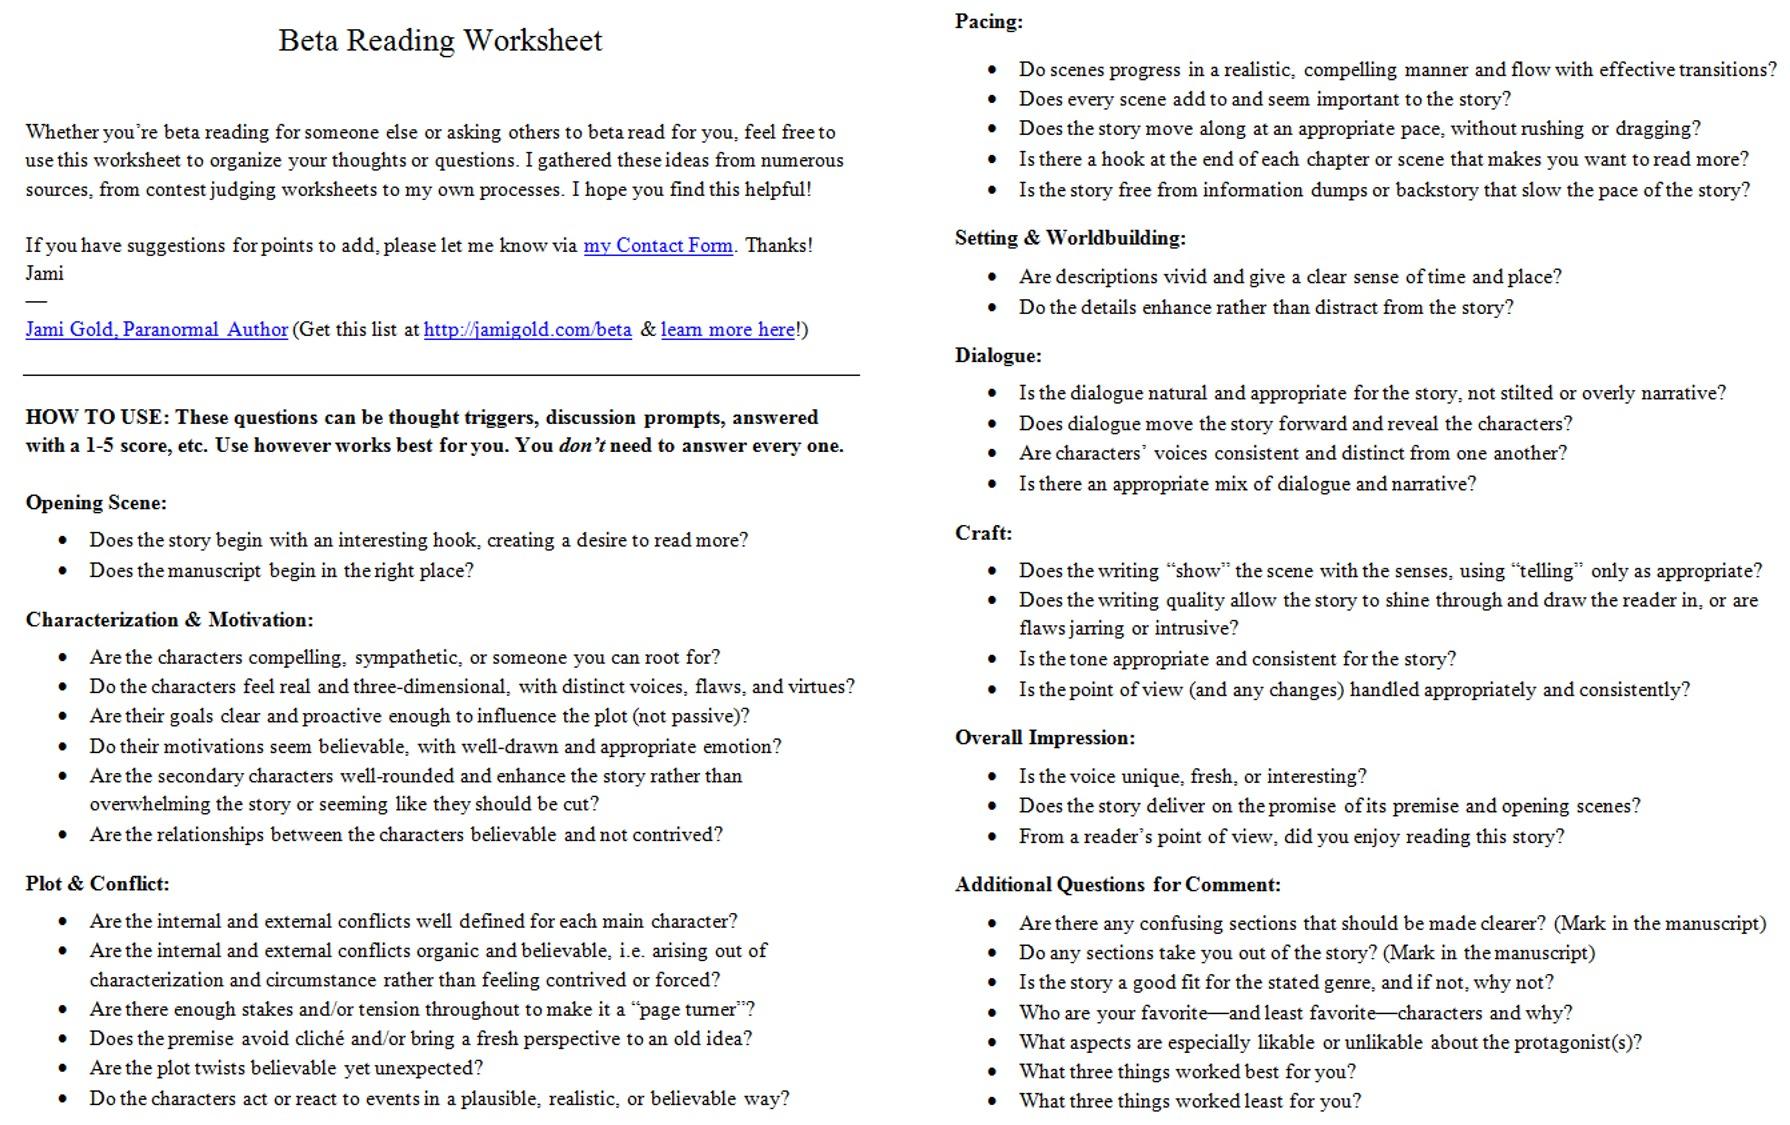 Aldiablosus  Scenic Worksheets For Writers  Jami Gold Paranormal Author With Extraordinary Screen Shot Of The Twopage Beta Reading Worksheet With Extraordinary Experimental Probability Worksheet With Answers Also Nd Grade Math Worksheets Regrouping In Addition Worksheet On Adding And Subtracting Integers And Scarlet Ibis Worksheet As Well As Writing Poetry Worksheets Additionally Multiplication As Repeated Addition Worksheet From Jamigoldcom With Aldiablosus  Extraordinary Worksheets For Writers  Jami Gold Paranormal Author With Extraordinary Screen Shot Of The Twopage Beta Reading Worksheet And Scenic Experimental Probability Worksheet With Answers Also Nd Grade Math Worksheets Regrouping In Addition Worksheet On Adding And Subtracting Integers From Jamigoldcom